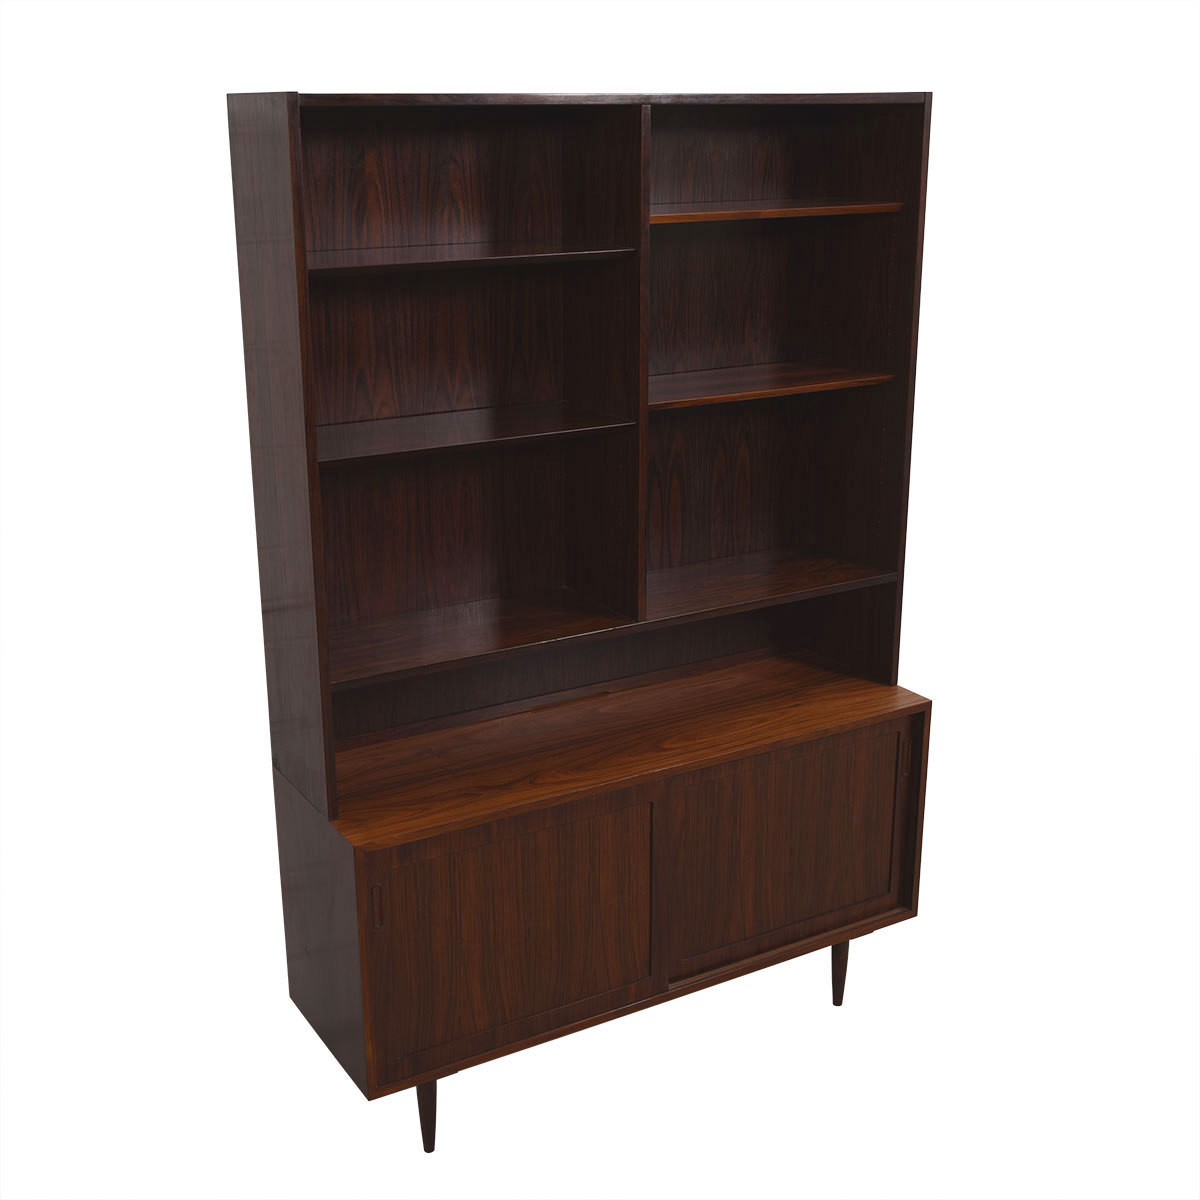 Danish Modern Rosewood Display Cabinet / Bookcase